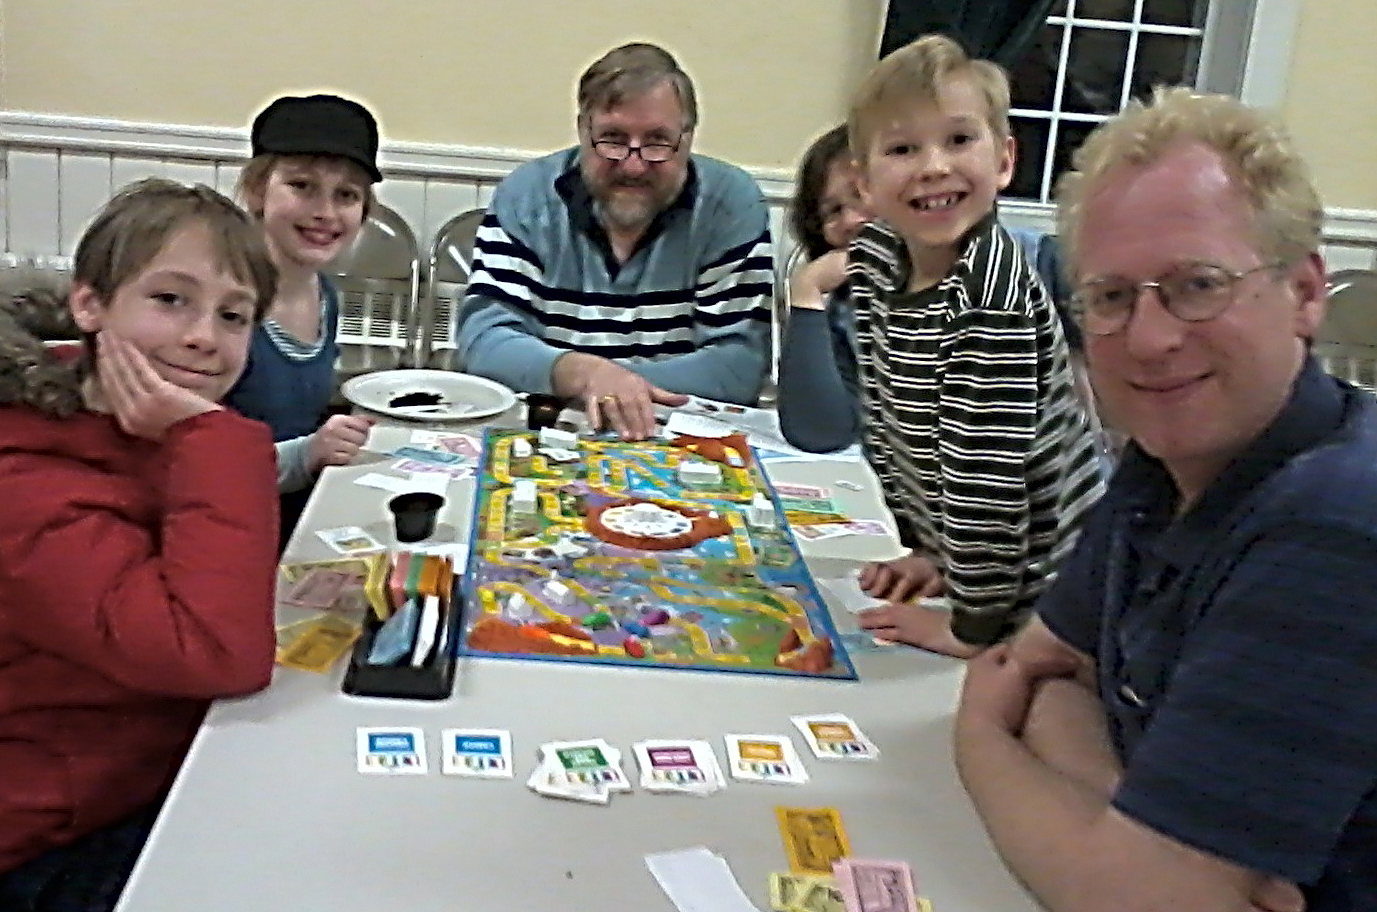 game night cropped